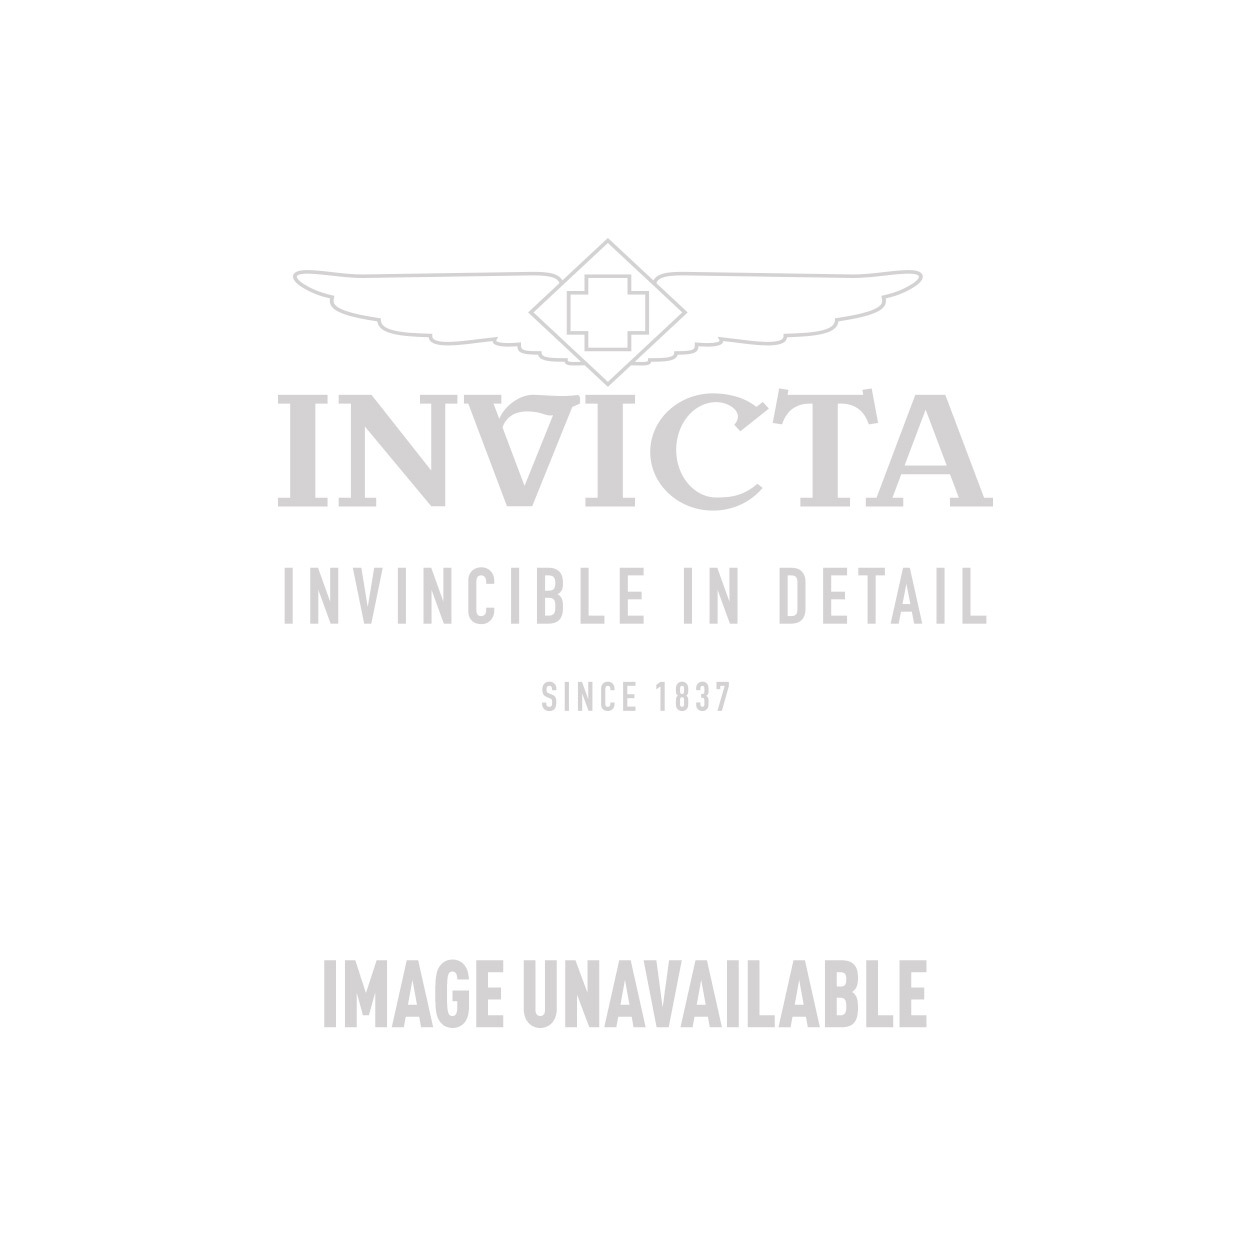 Invicta 1 Slot Impact Case - Model DC1BLK